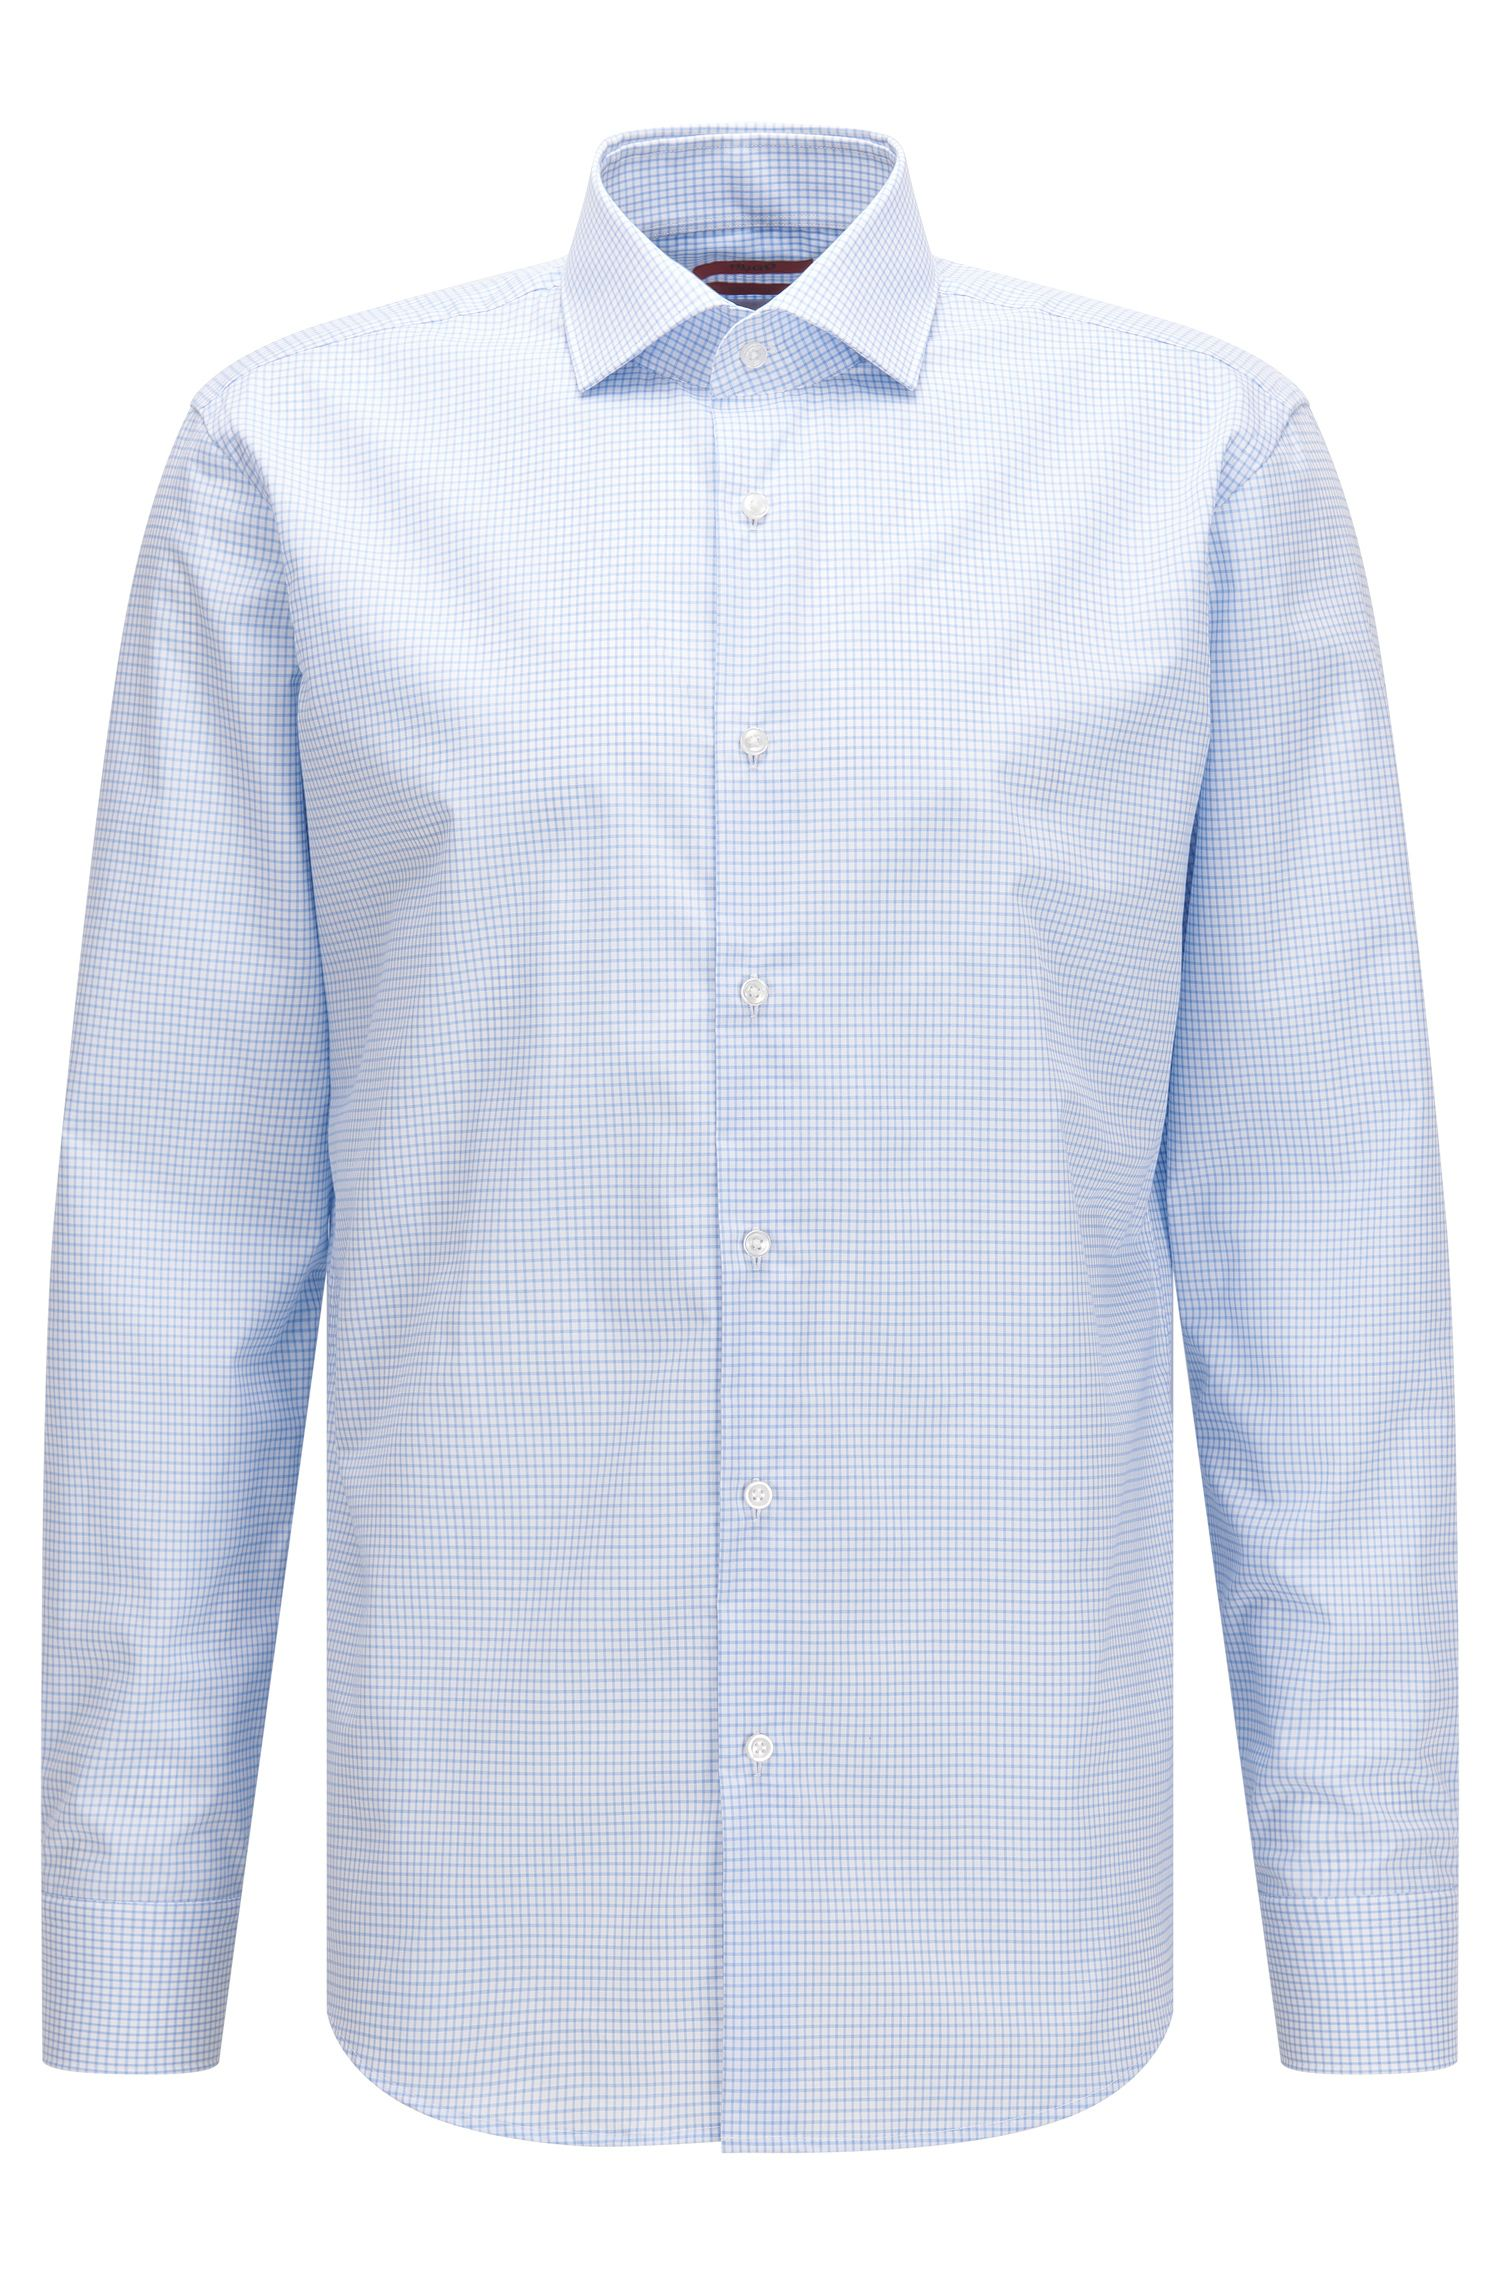 Regular-fit shirt in Vichy-check cotton